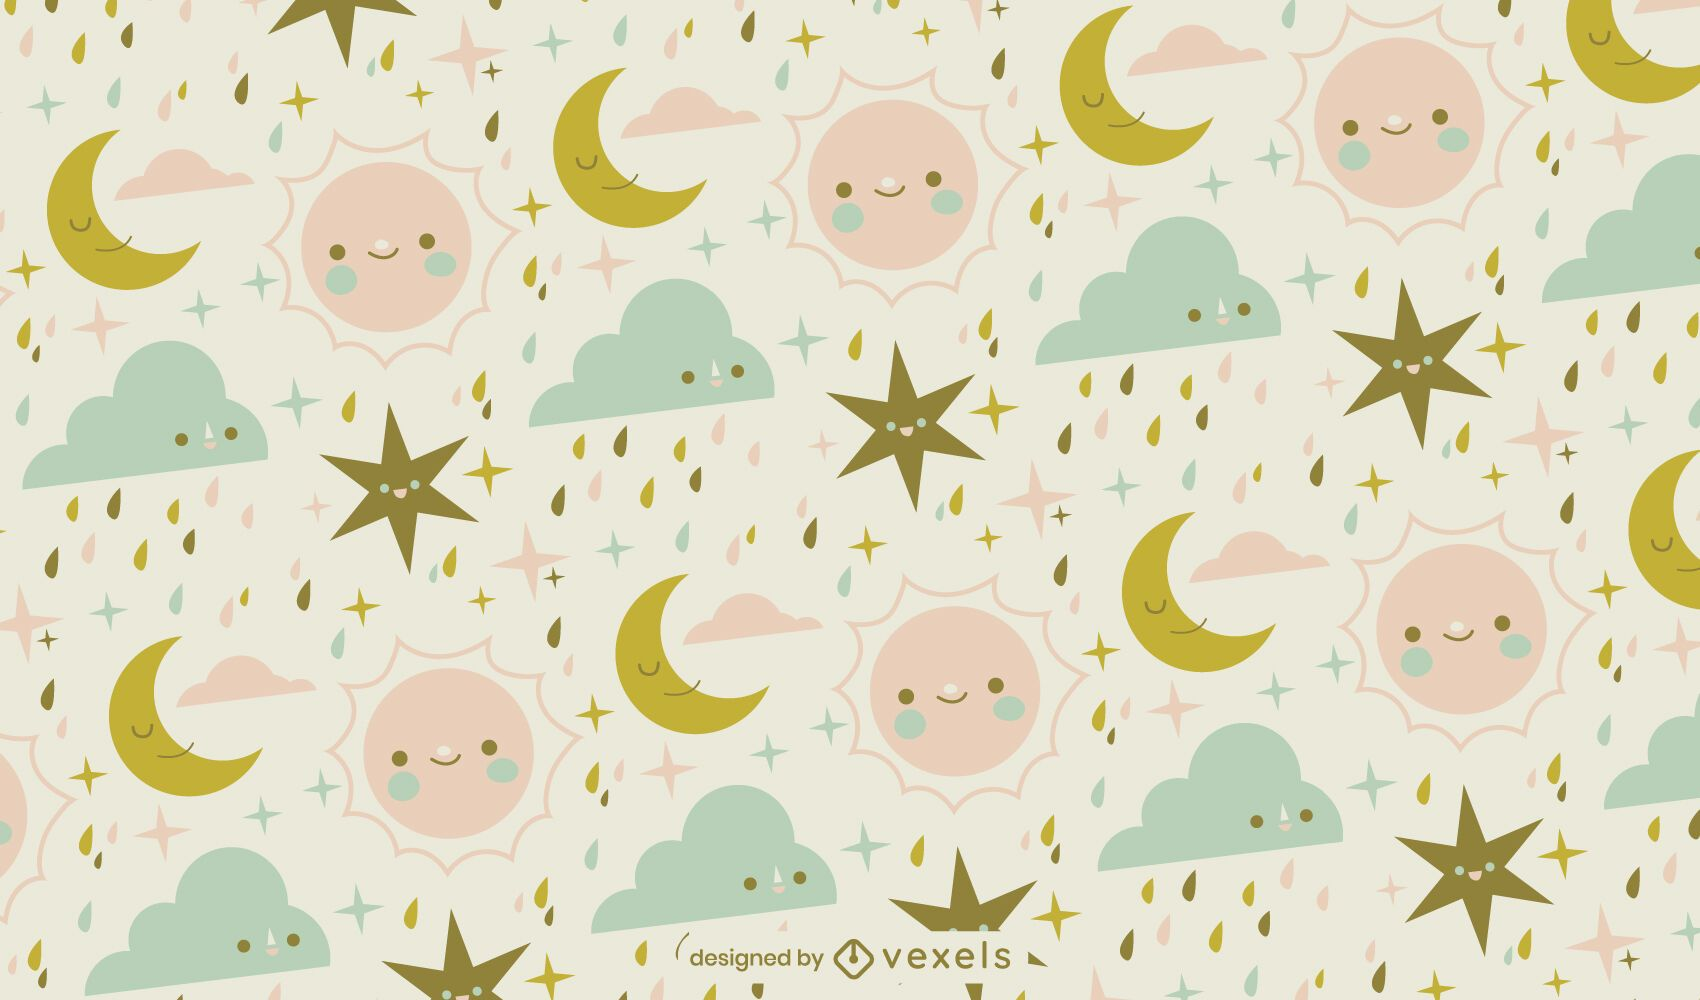 Cute baby sun and moon sky pattern design